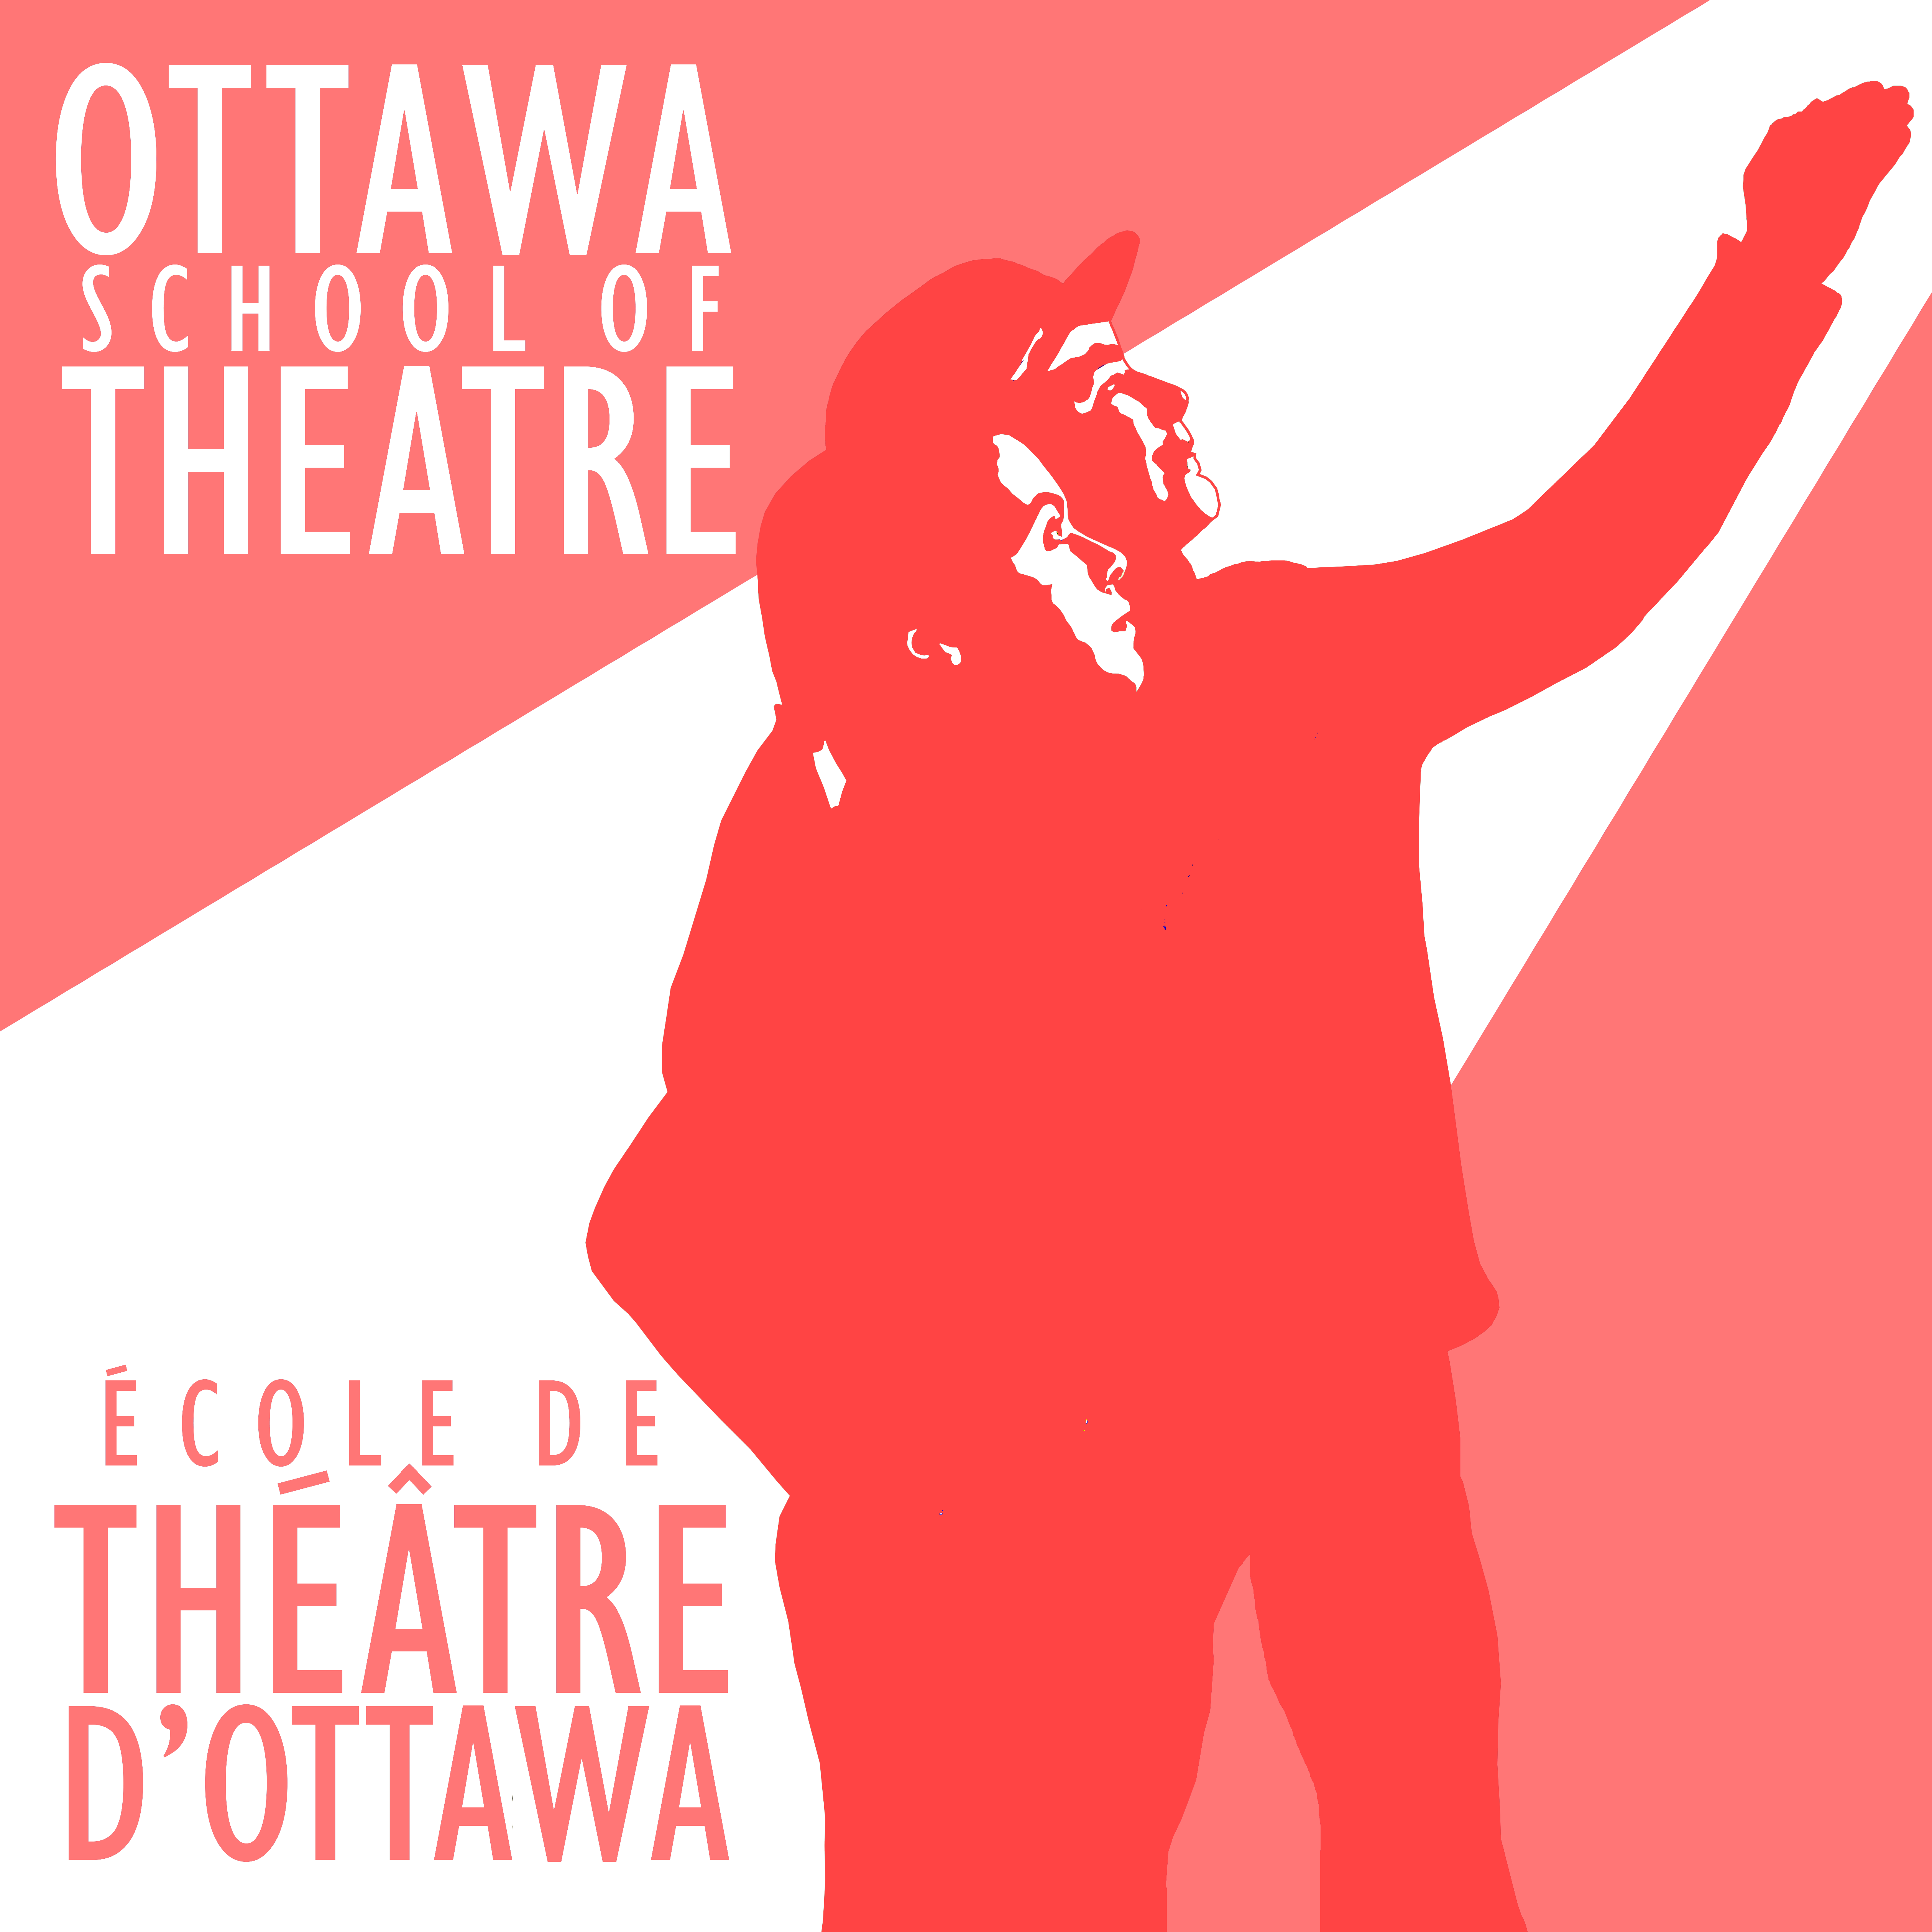 Ottawa School of Theatre logo.